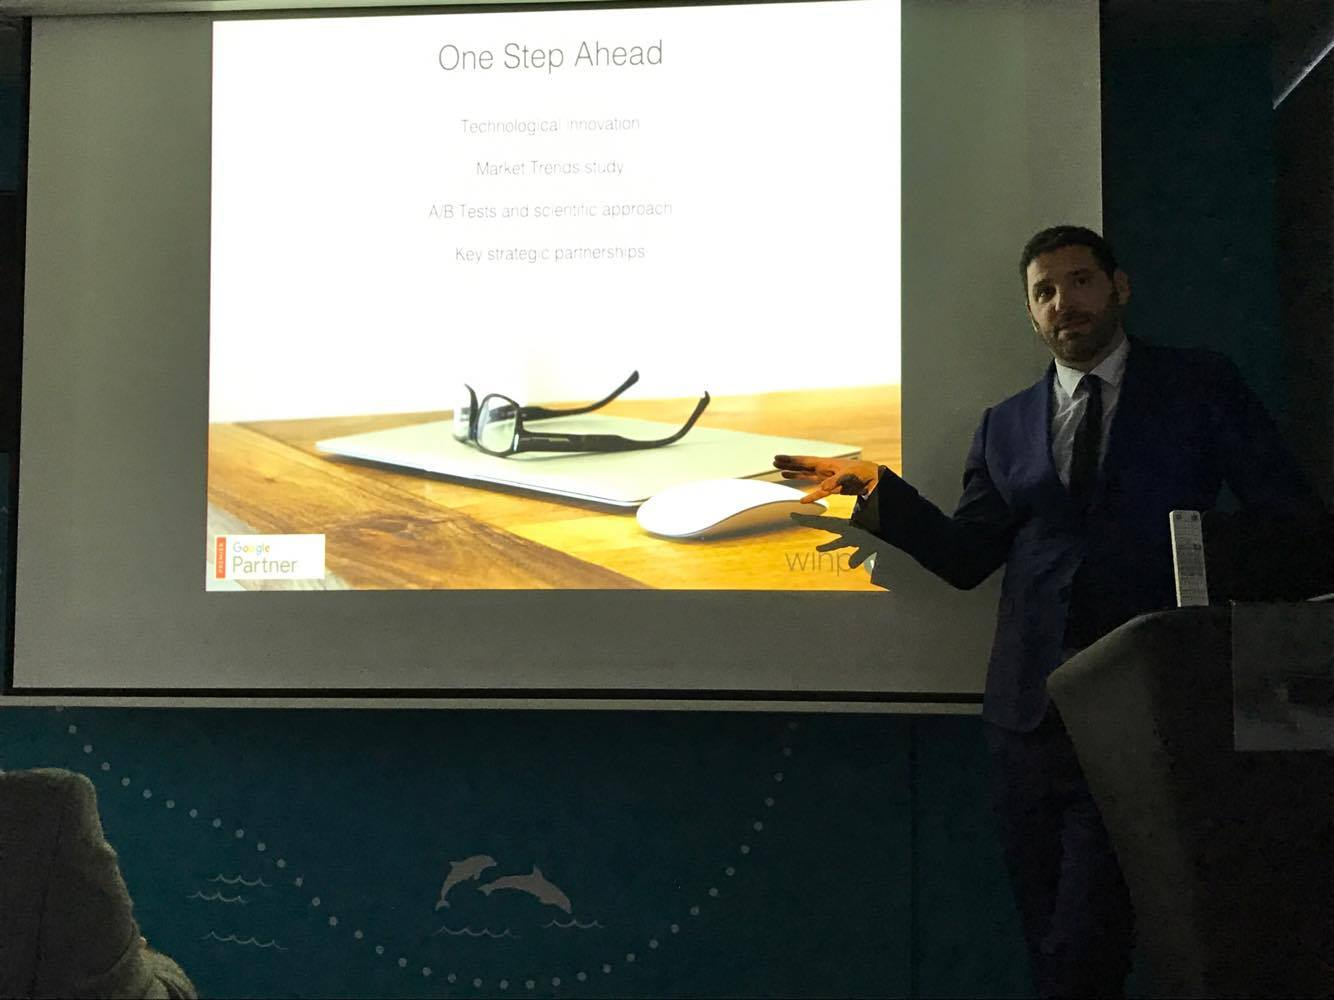 One Step Ahead during Skyscanner's First industry hotels event